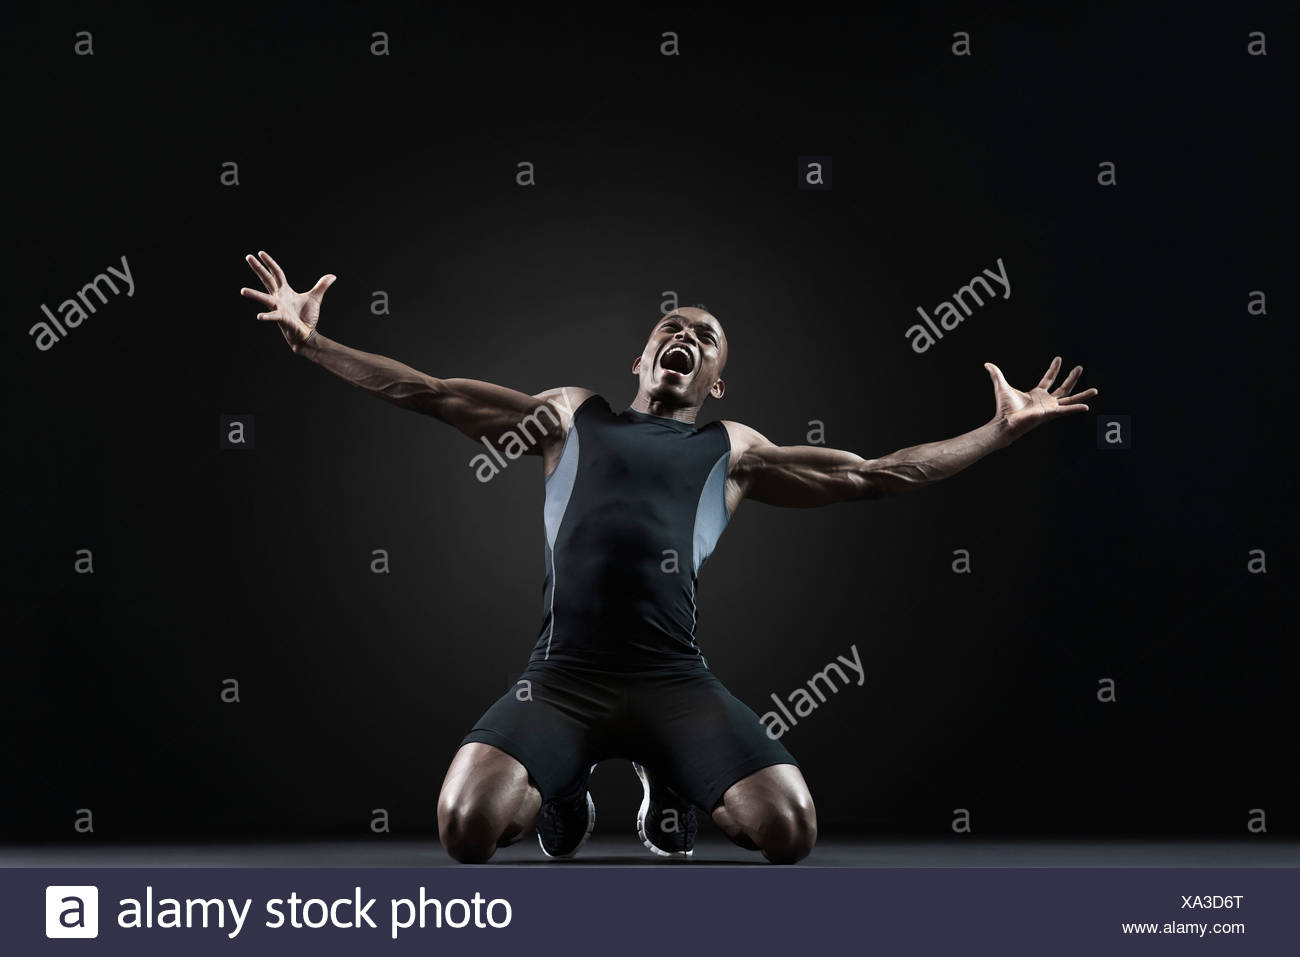 Male athlete kneeling and shouting with despair - Stock Image